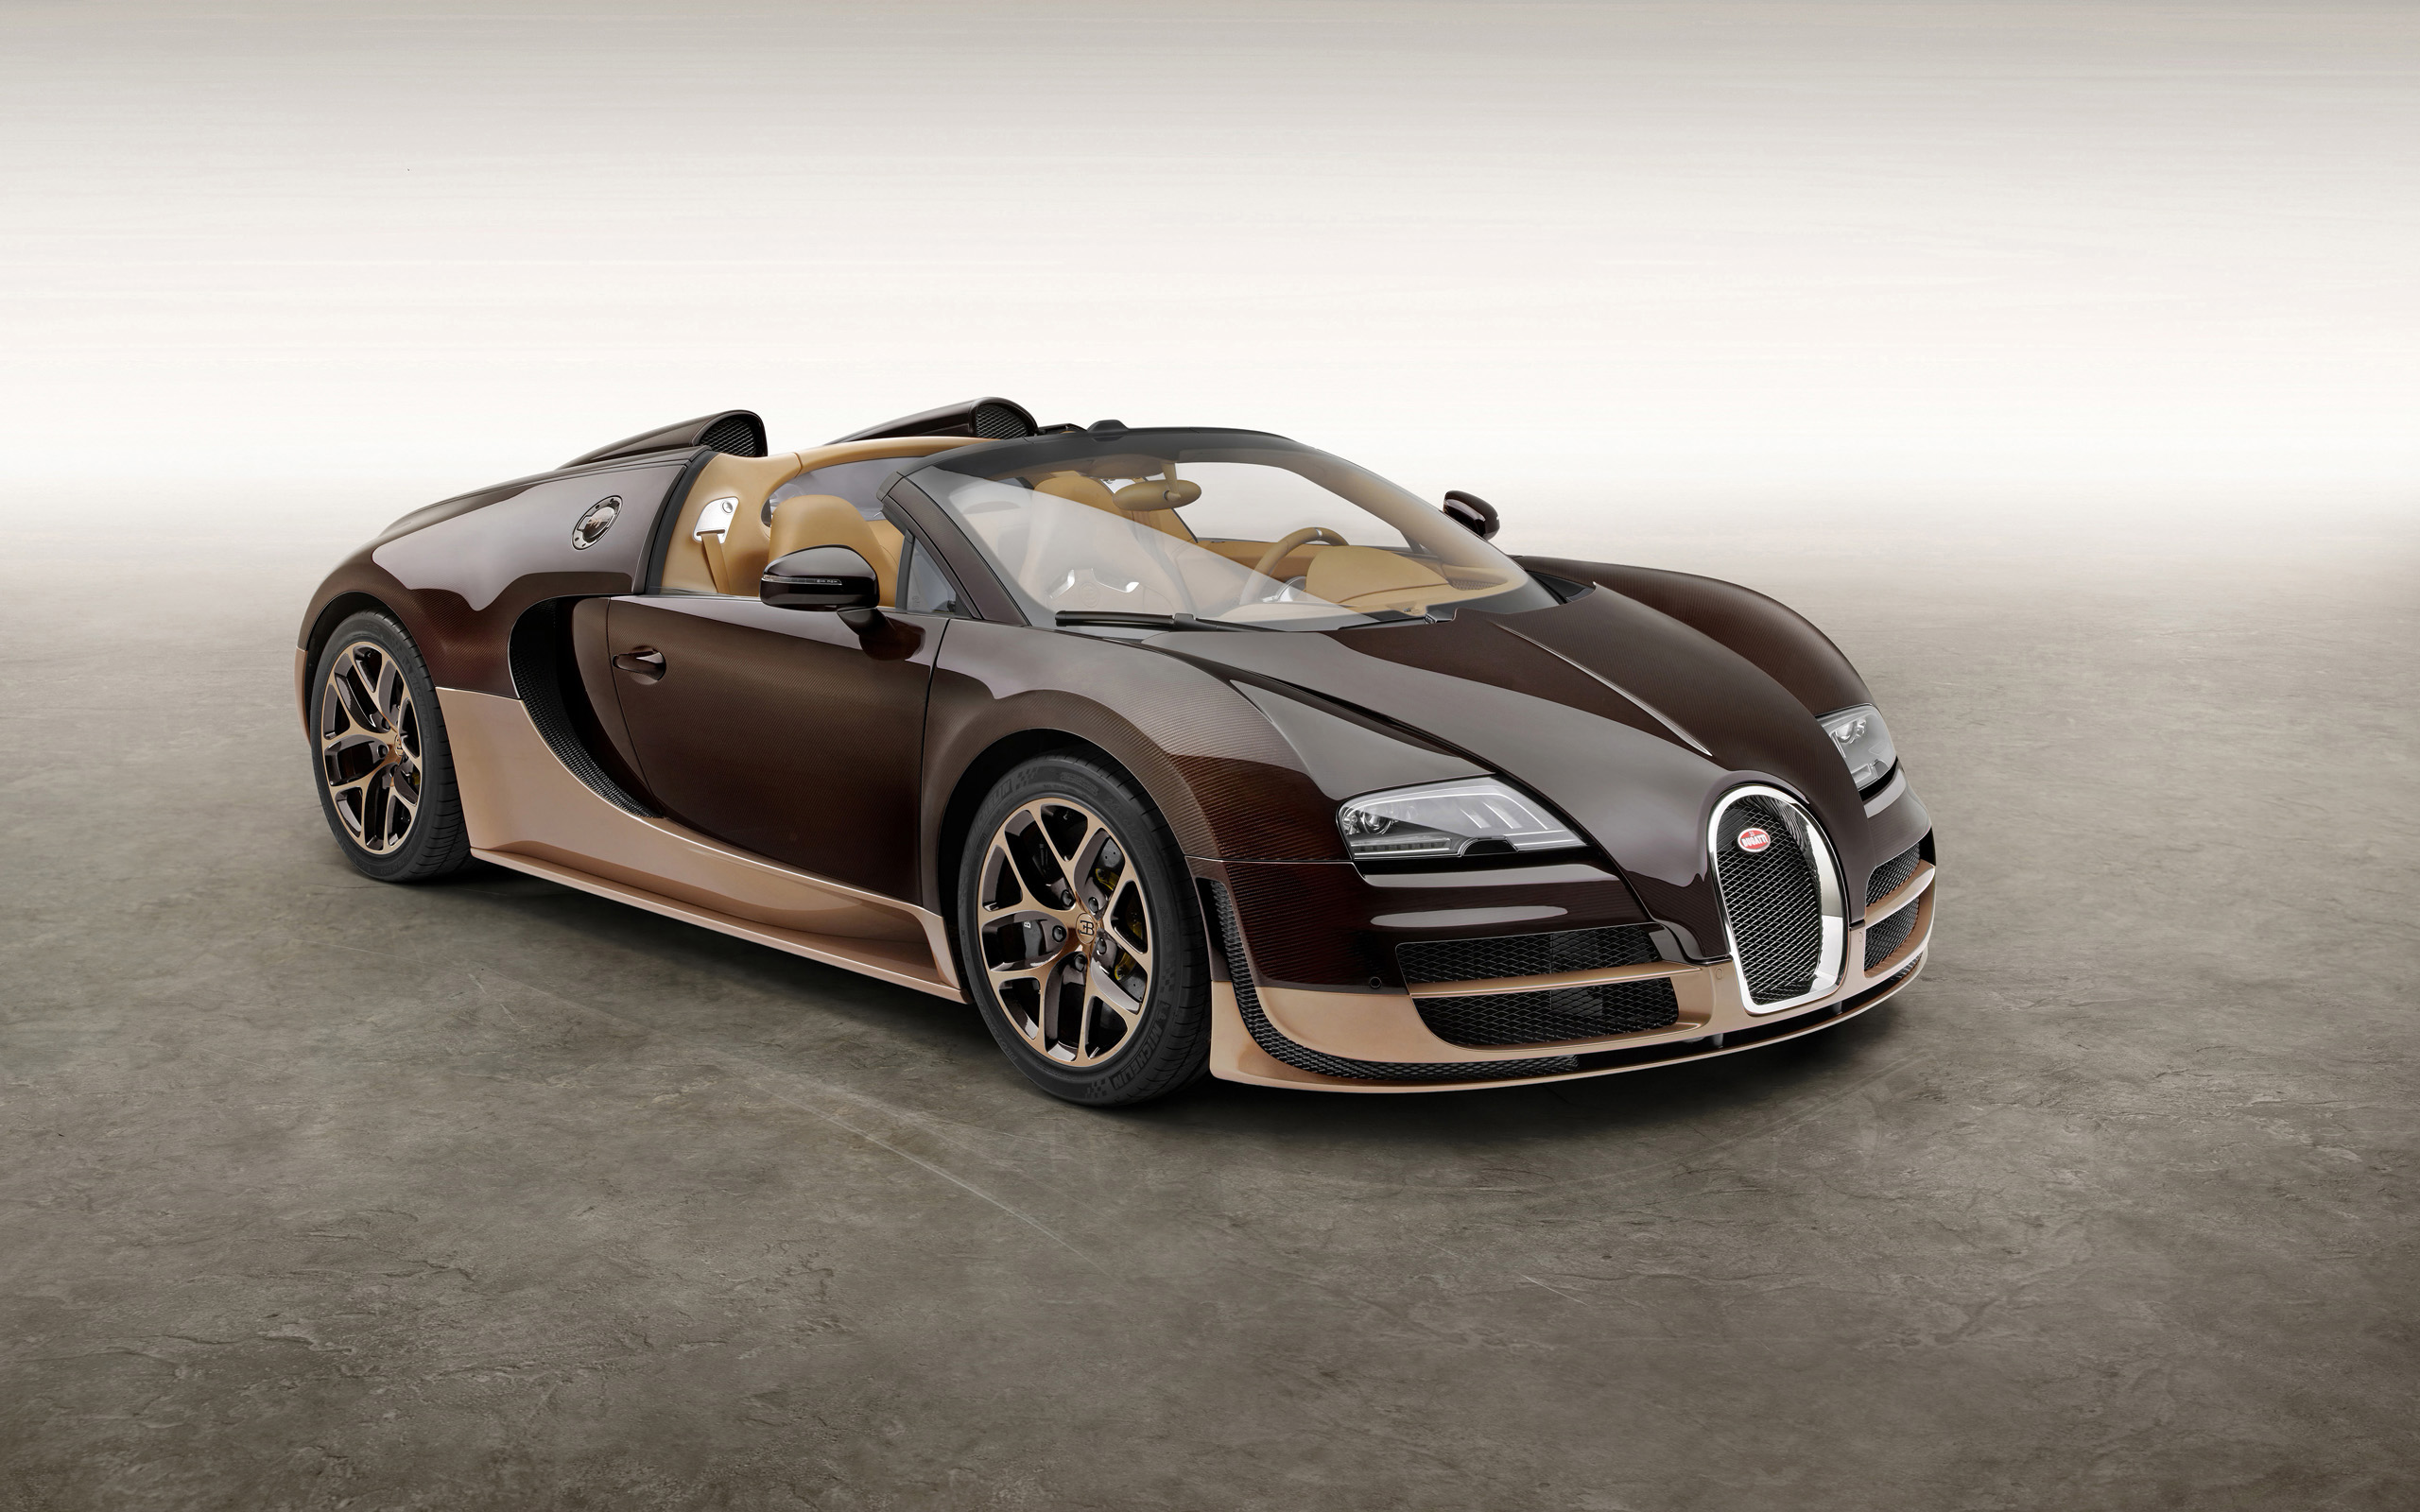 2014 bugatti veyron grand sport vitesse legend rembrandt bugatti wallpaper. Black Bedroom Furniture Sets. Home Design Ideas